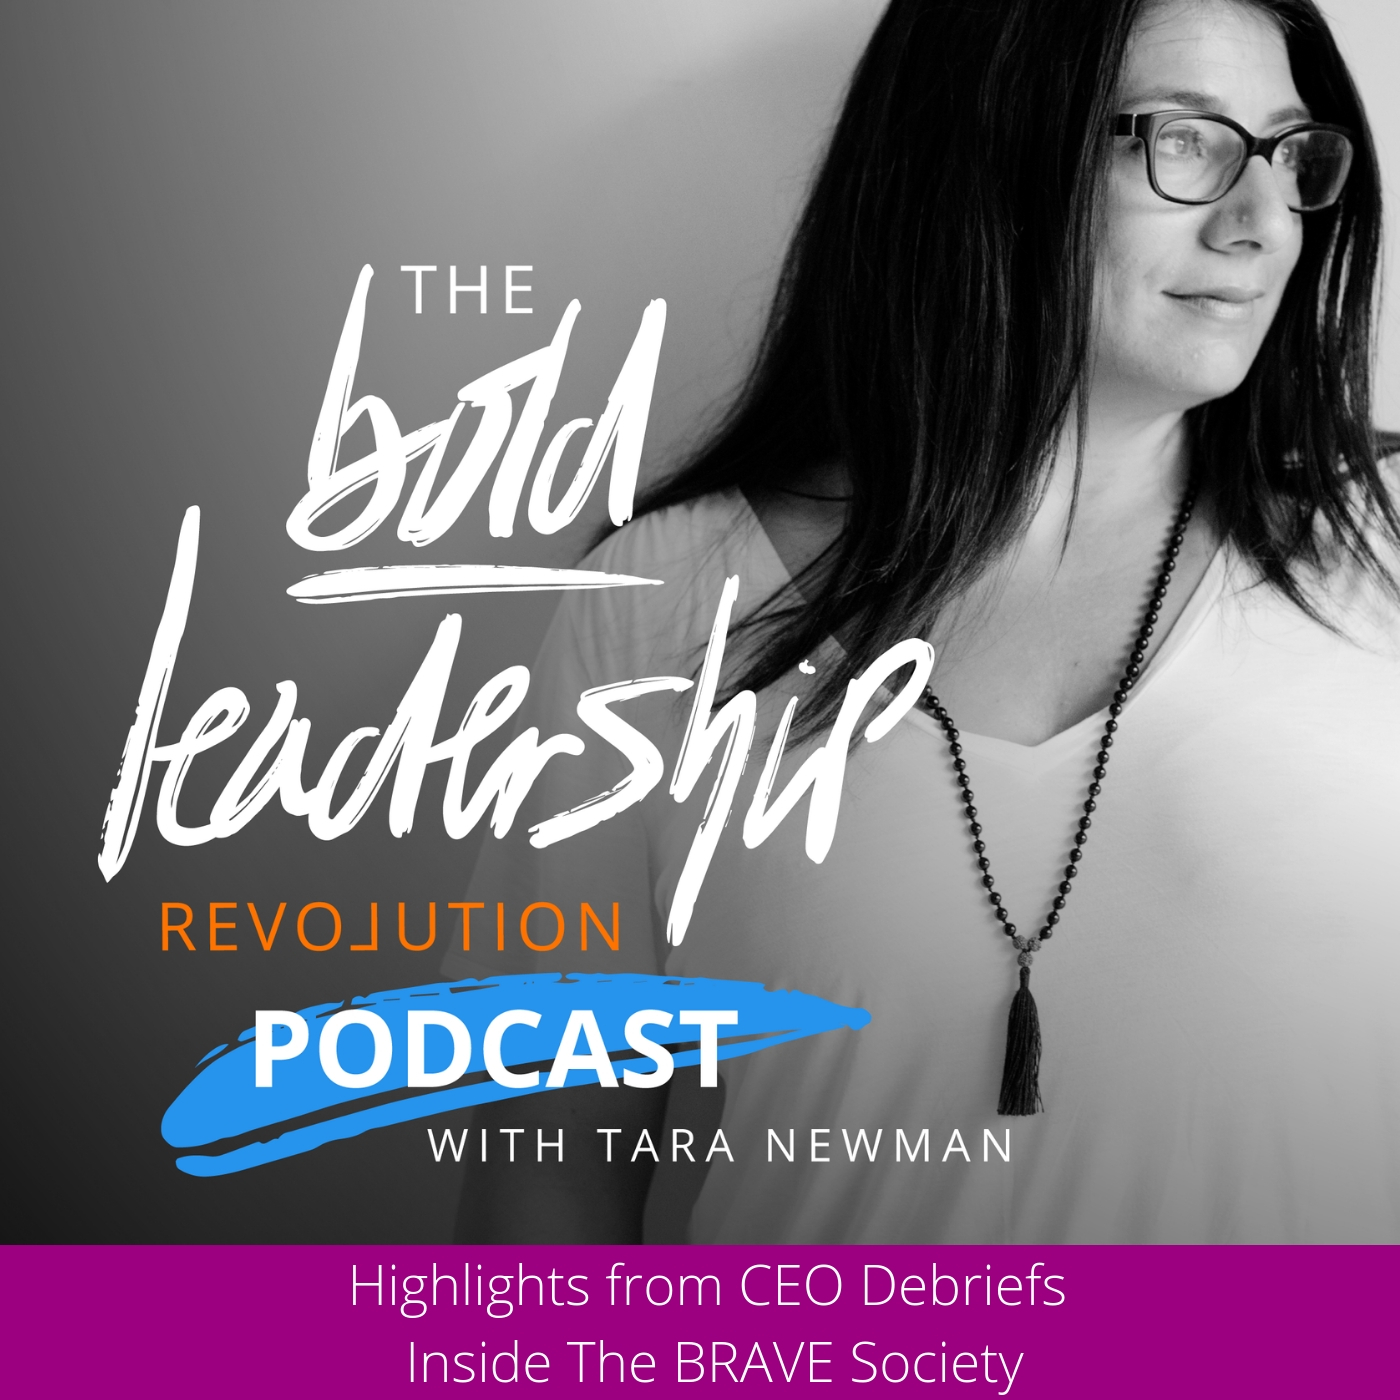 Listen In: Highlights from CEO Debriefs Inside The BRAVE Society